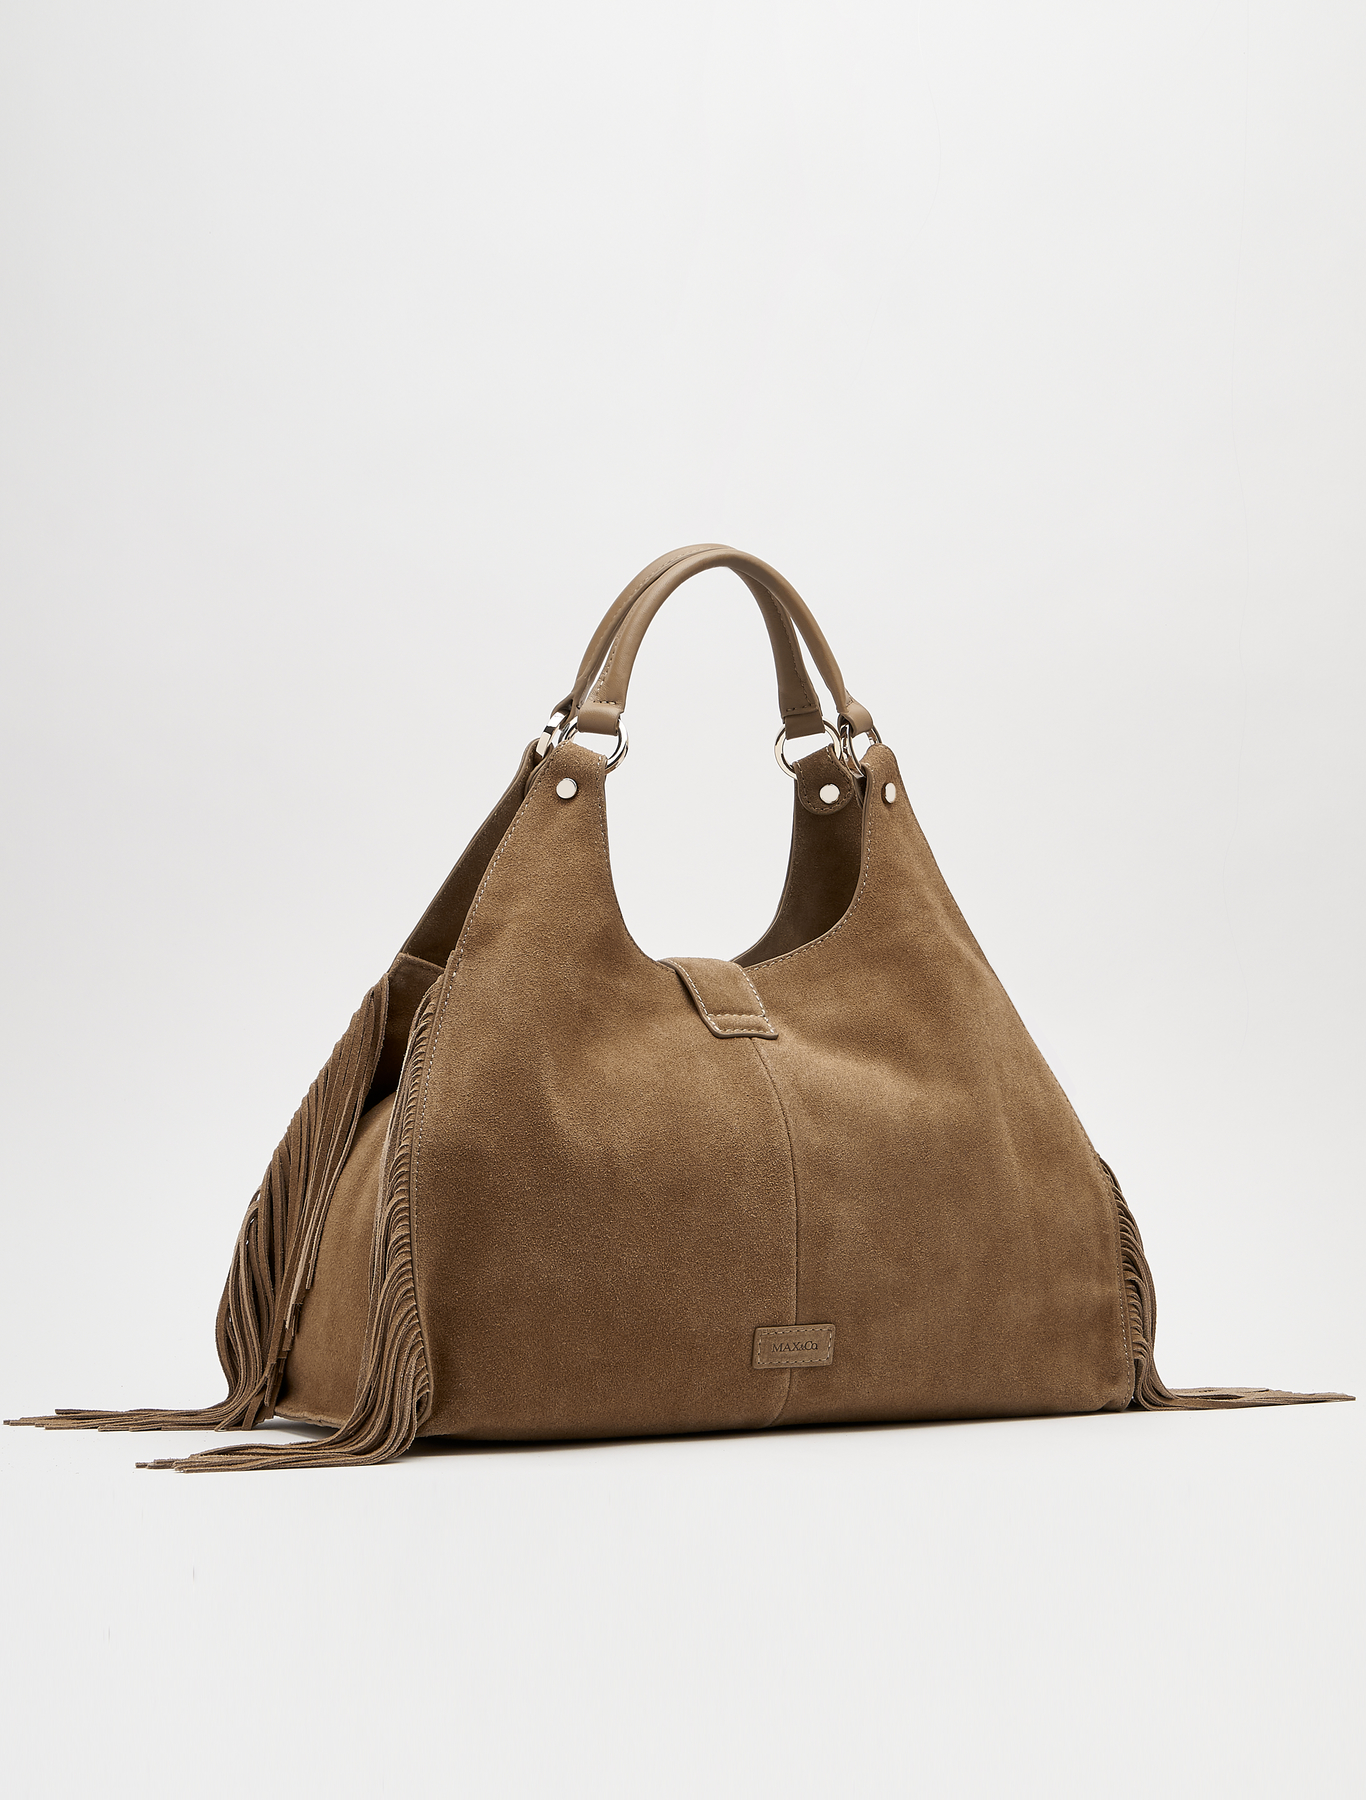 Borsa in camoscio beige con frange Max and Co a 259 euro